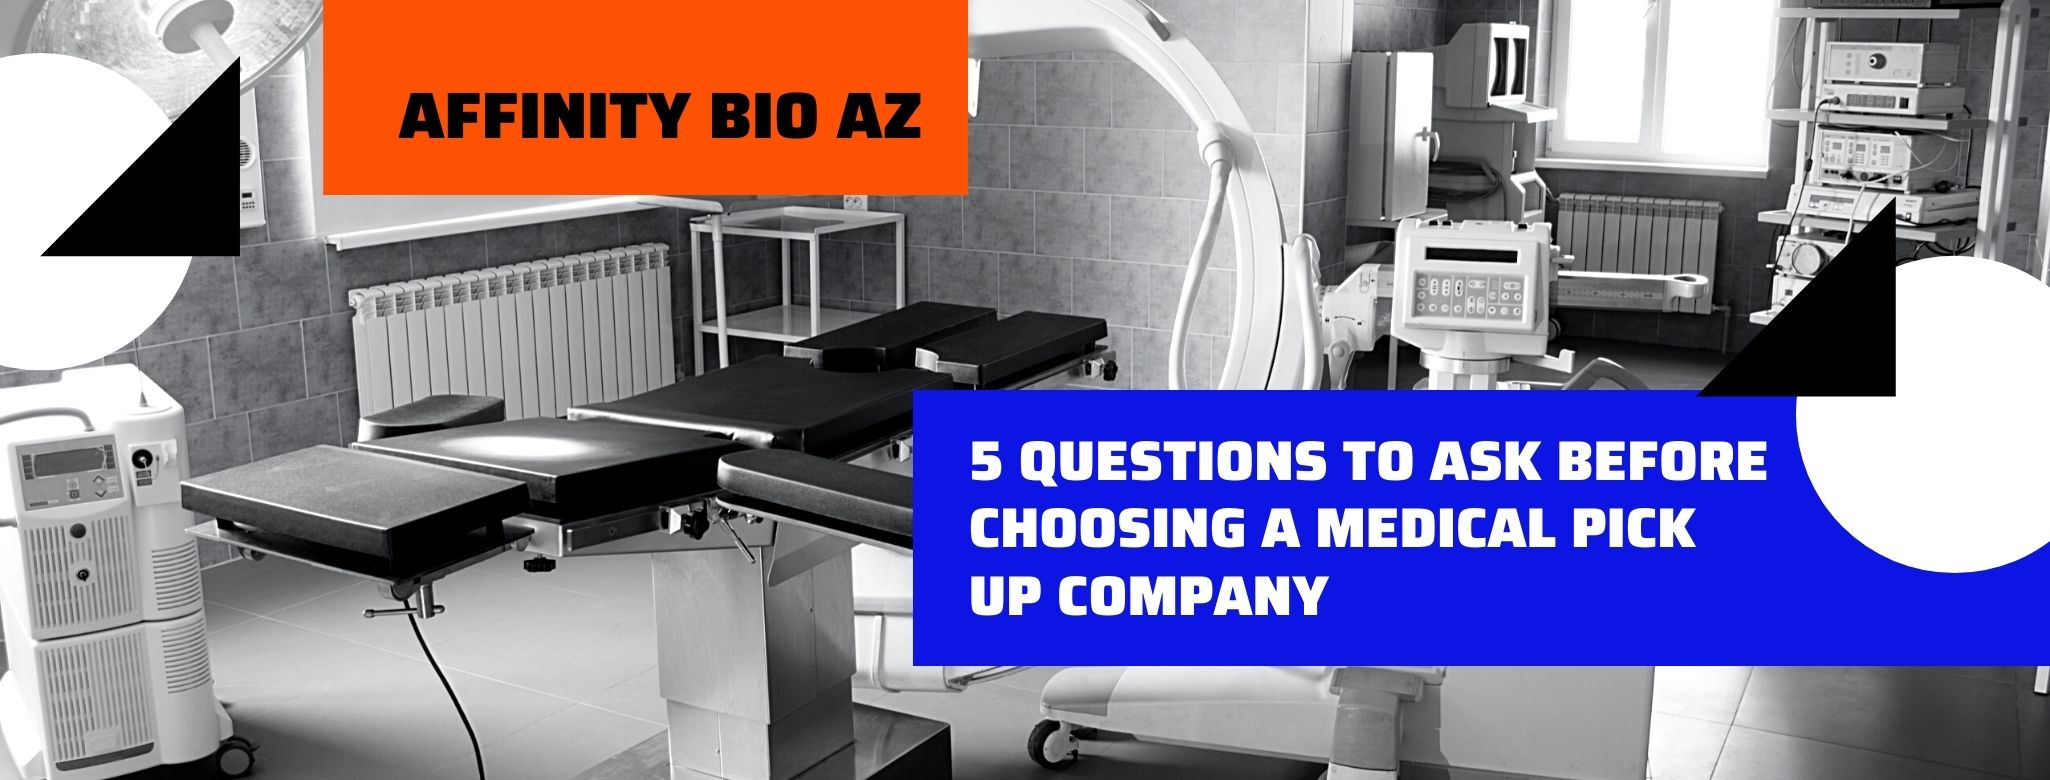 5 Questions to Ask Before Choosing a Medical Pick Up Company